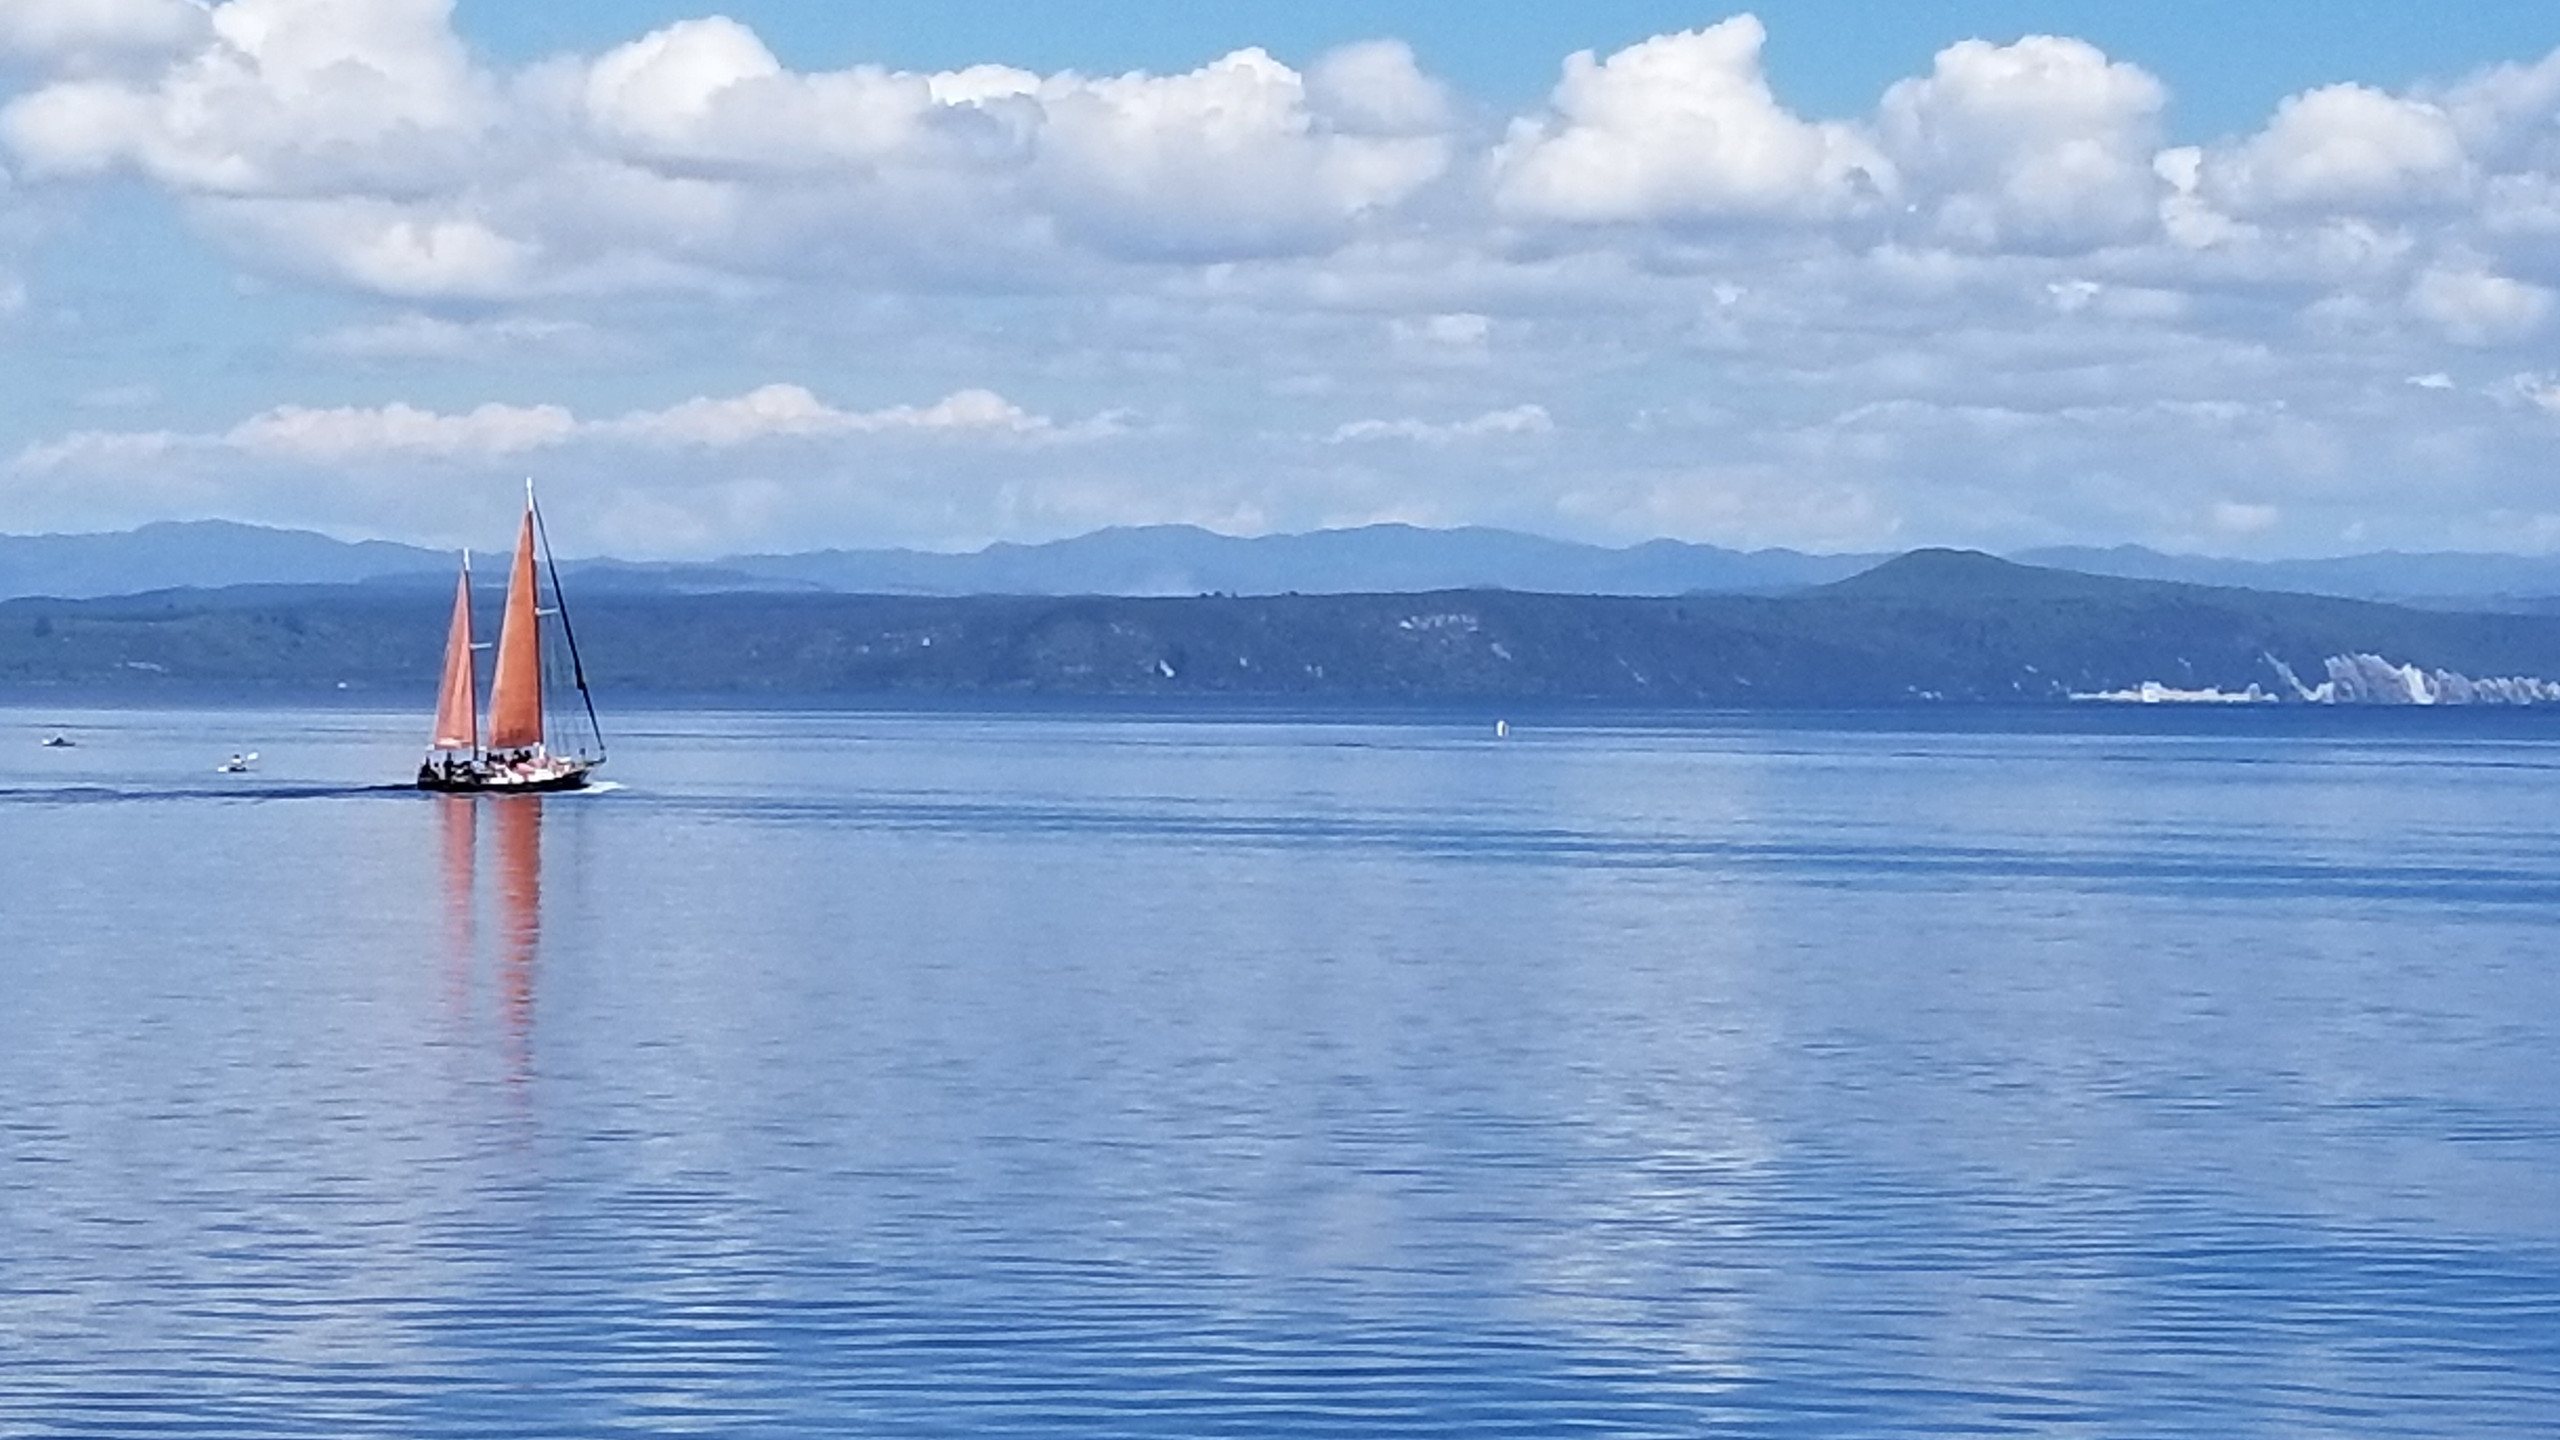 Taupo lake, New Zealand activities, New Zealand attractions